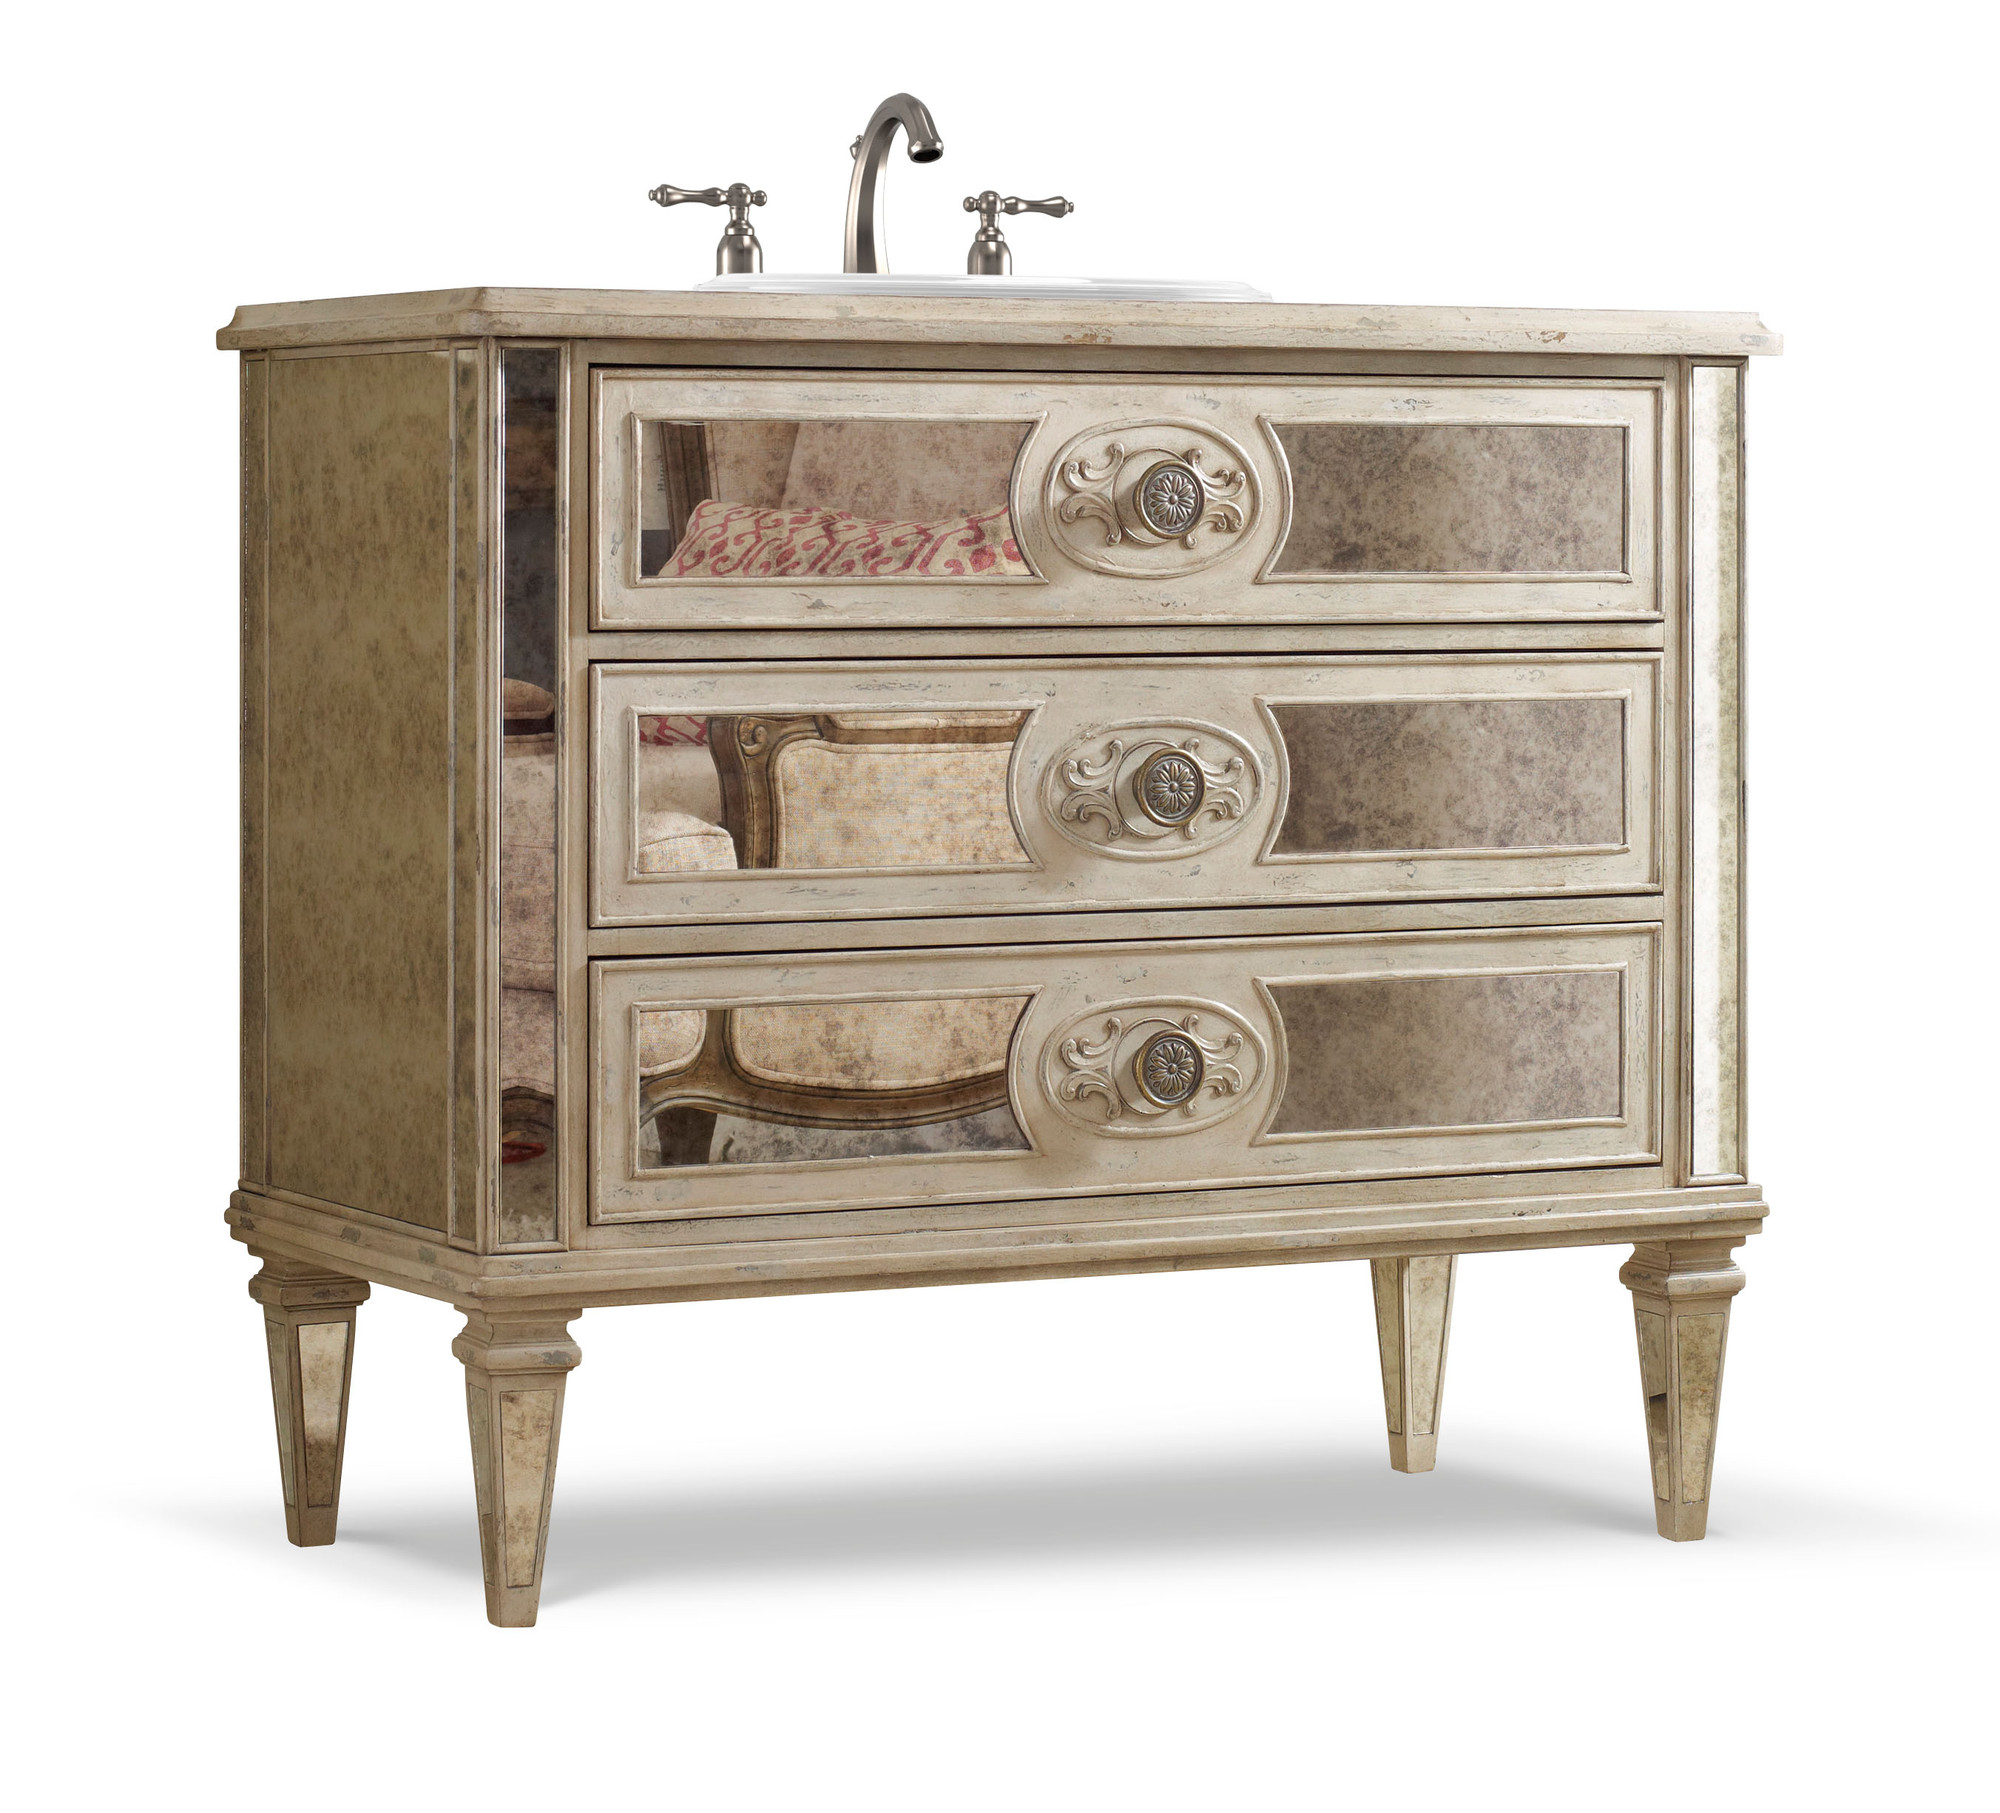 Olivia 42 inch Chest Bathroom Vanity by Cole & Co Designer Series